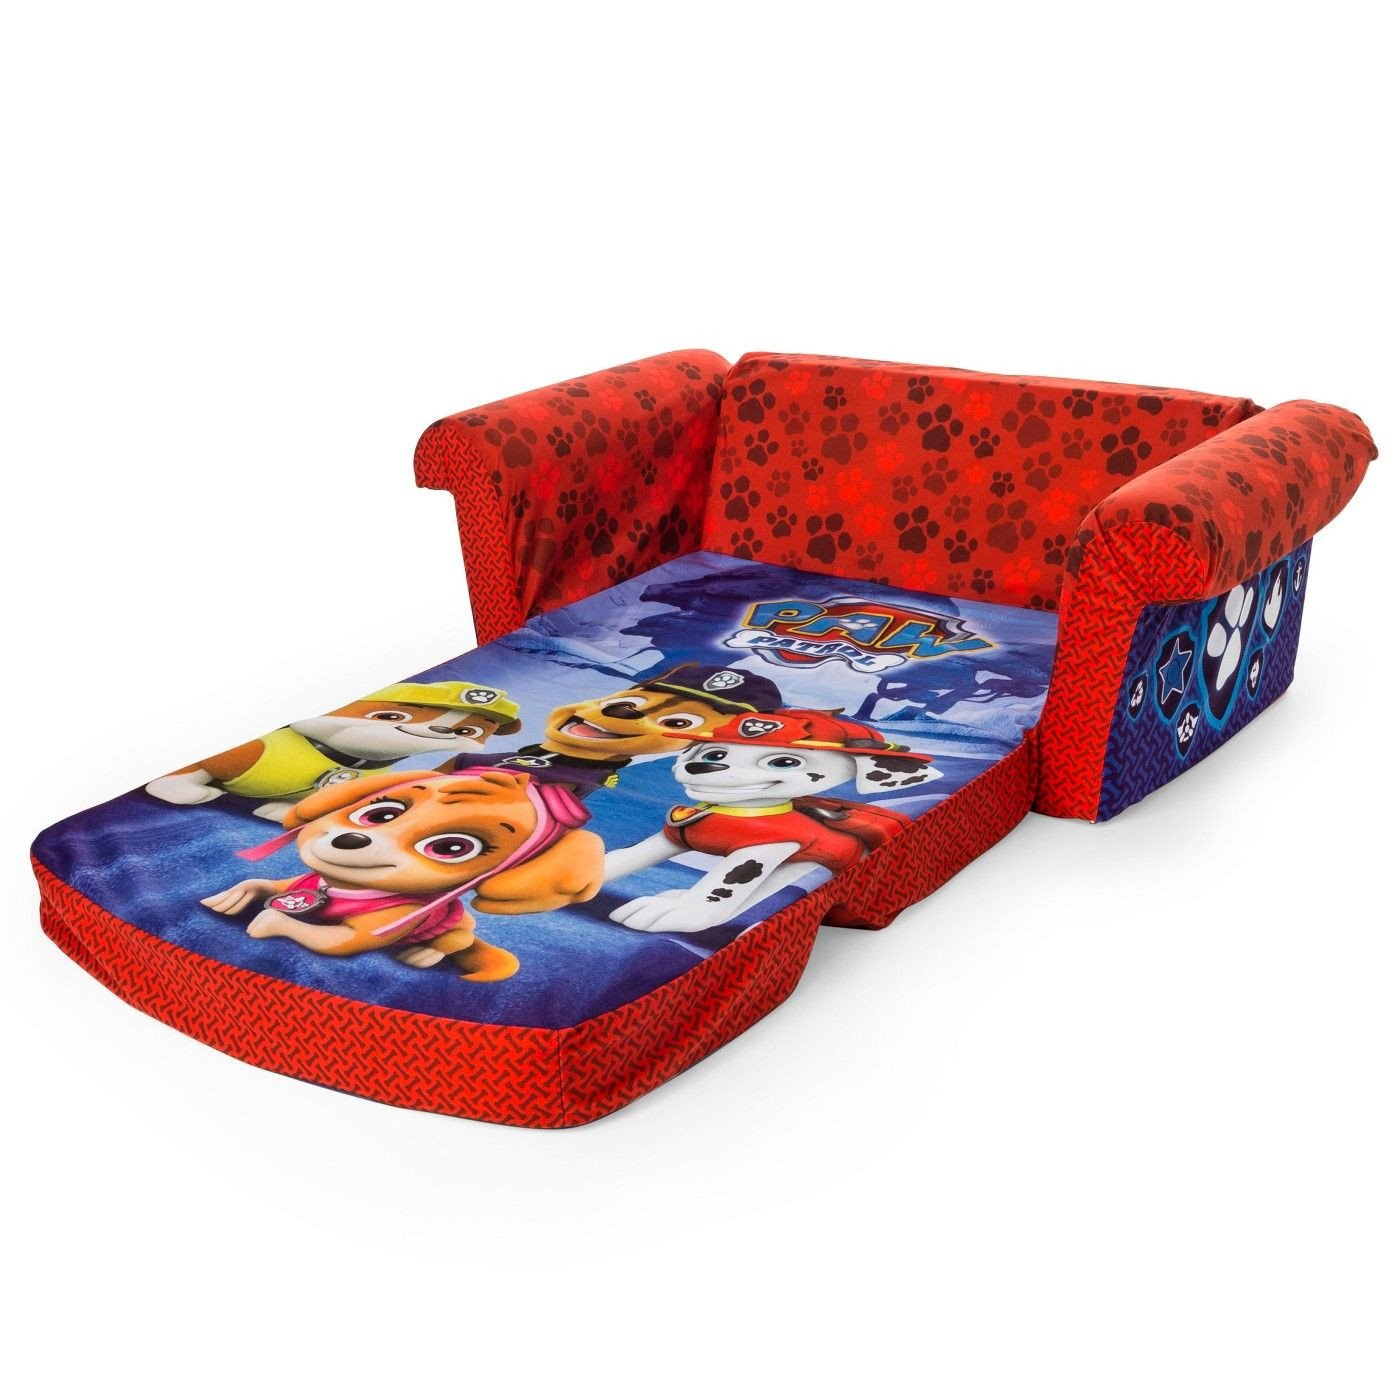 Paw Patrol Bedroom Furniture Inspirational Marshmallow Furniture Children S 2 In 1 Flip Open Foam sofa